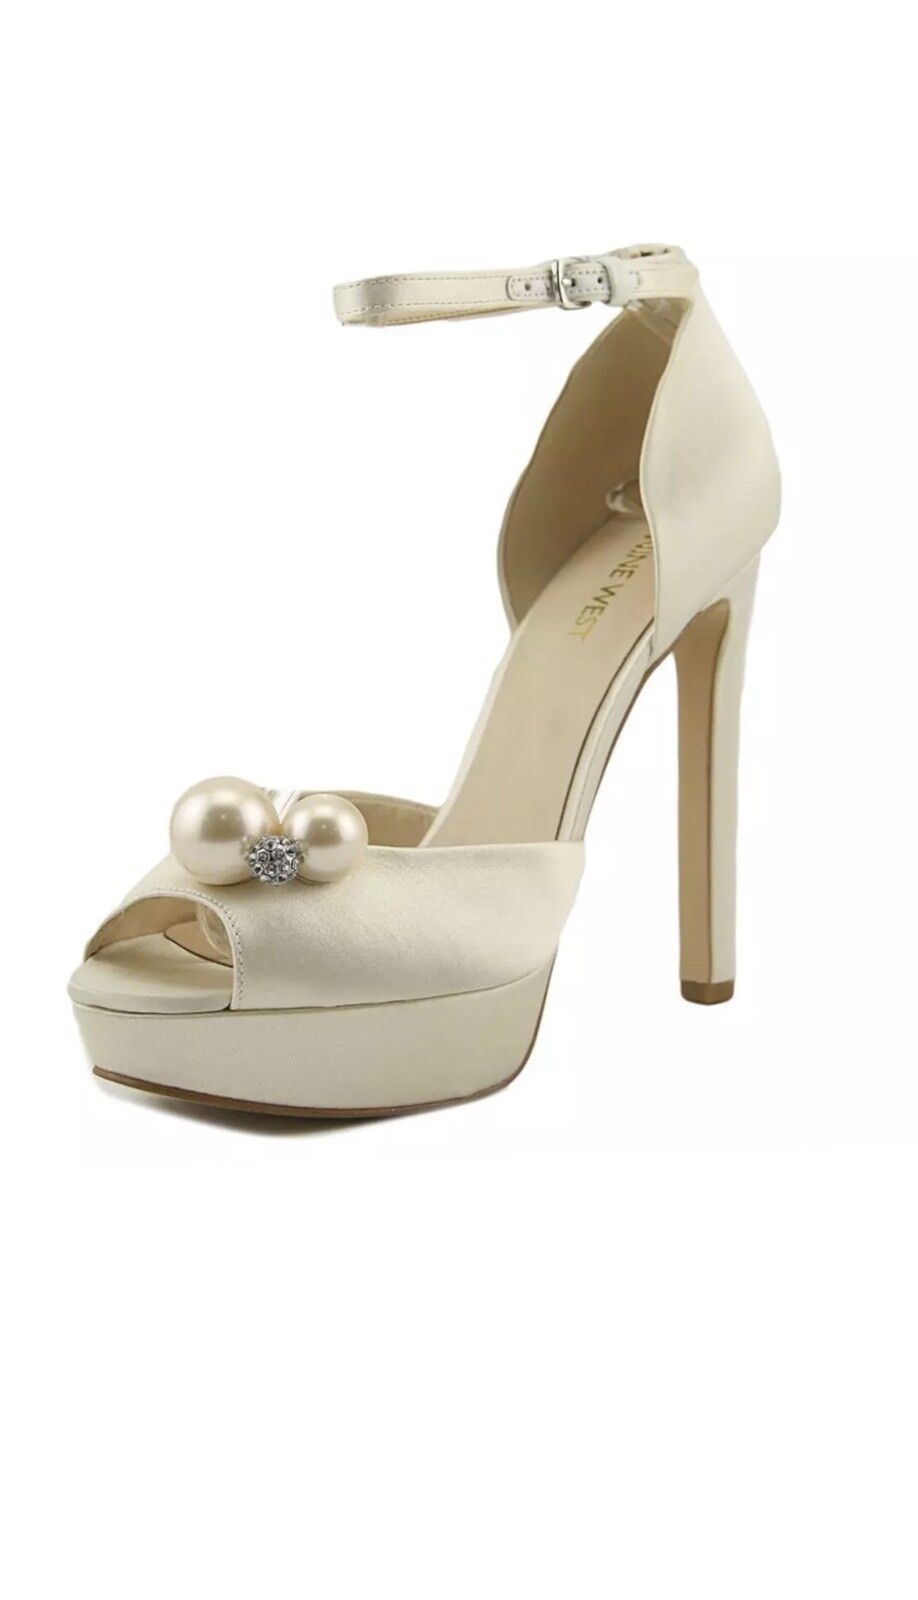 Nine West Vidah 7 Off White Ivory Satin Silk Platform Peep Wedding Pearl Sandals